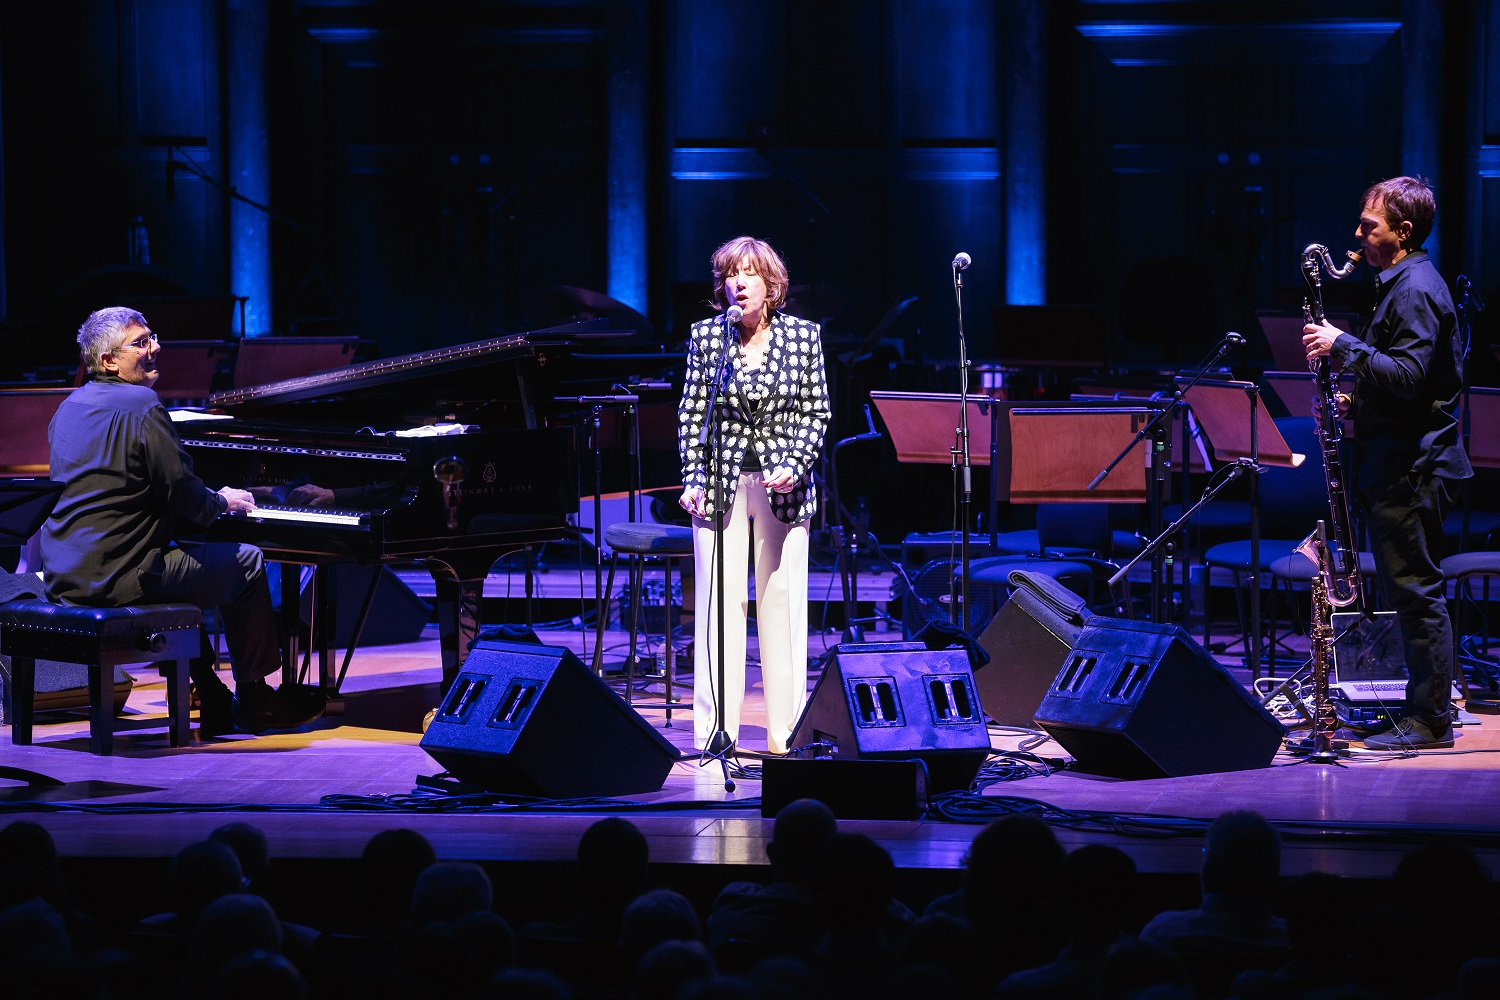 Norma Winstone with pianist Glauco Venier and reeds player Klaus Gesing